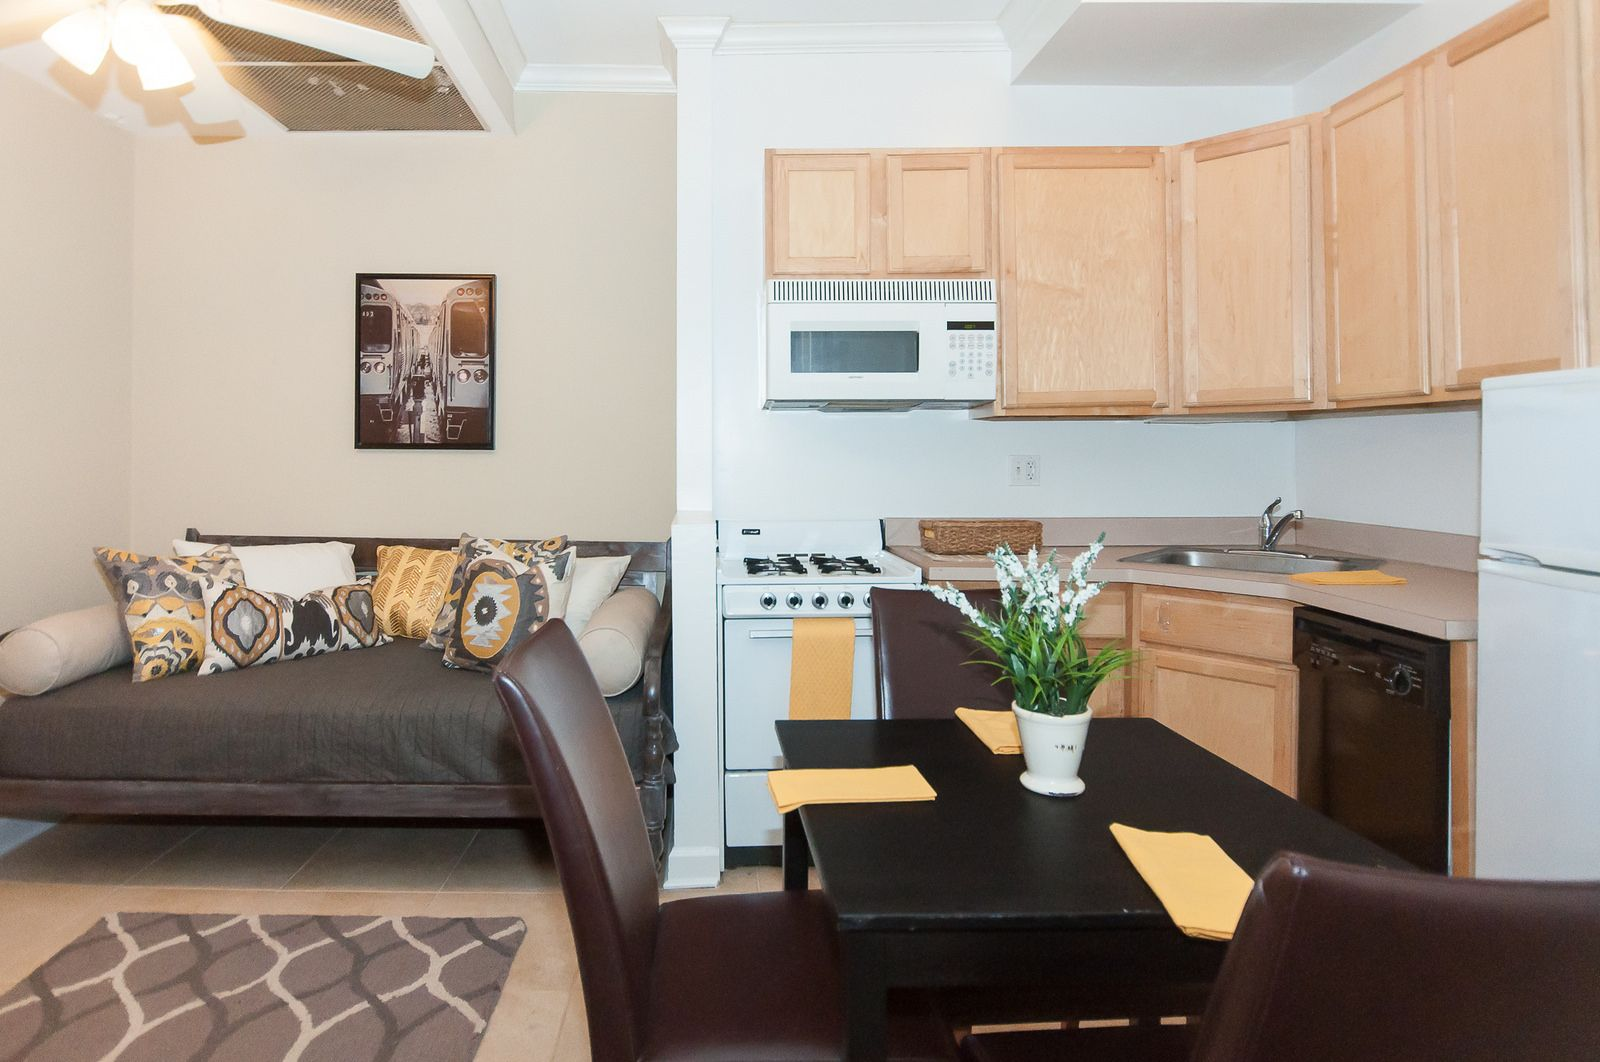 This Chicago Studio Apartment Is So Spacious There Is Room For A Dining Table Large Bed And A Great Size Kitc Chicago Apartment Large Beds Rental Apartments